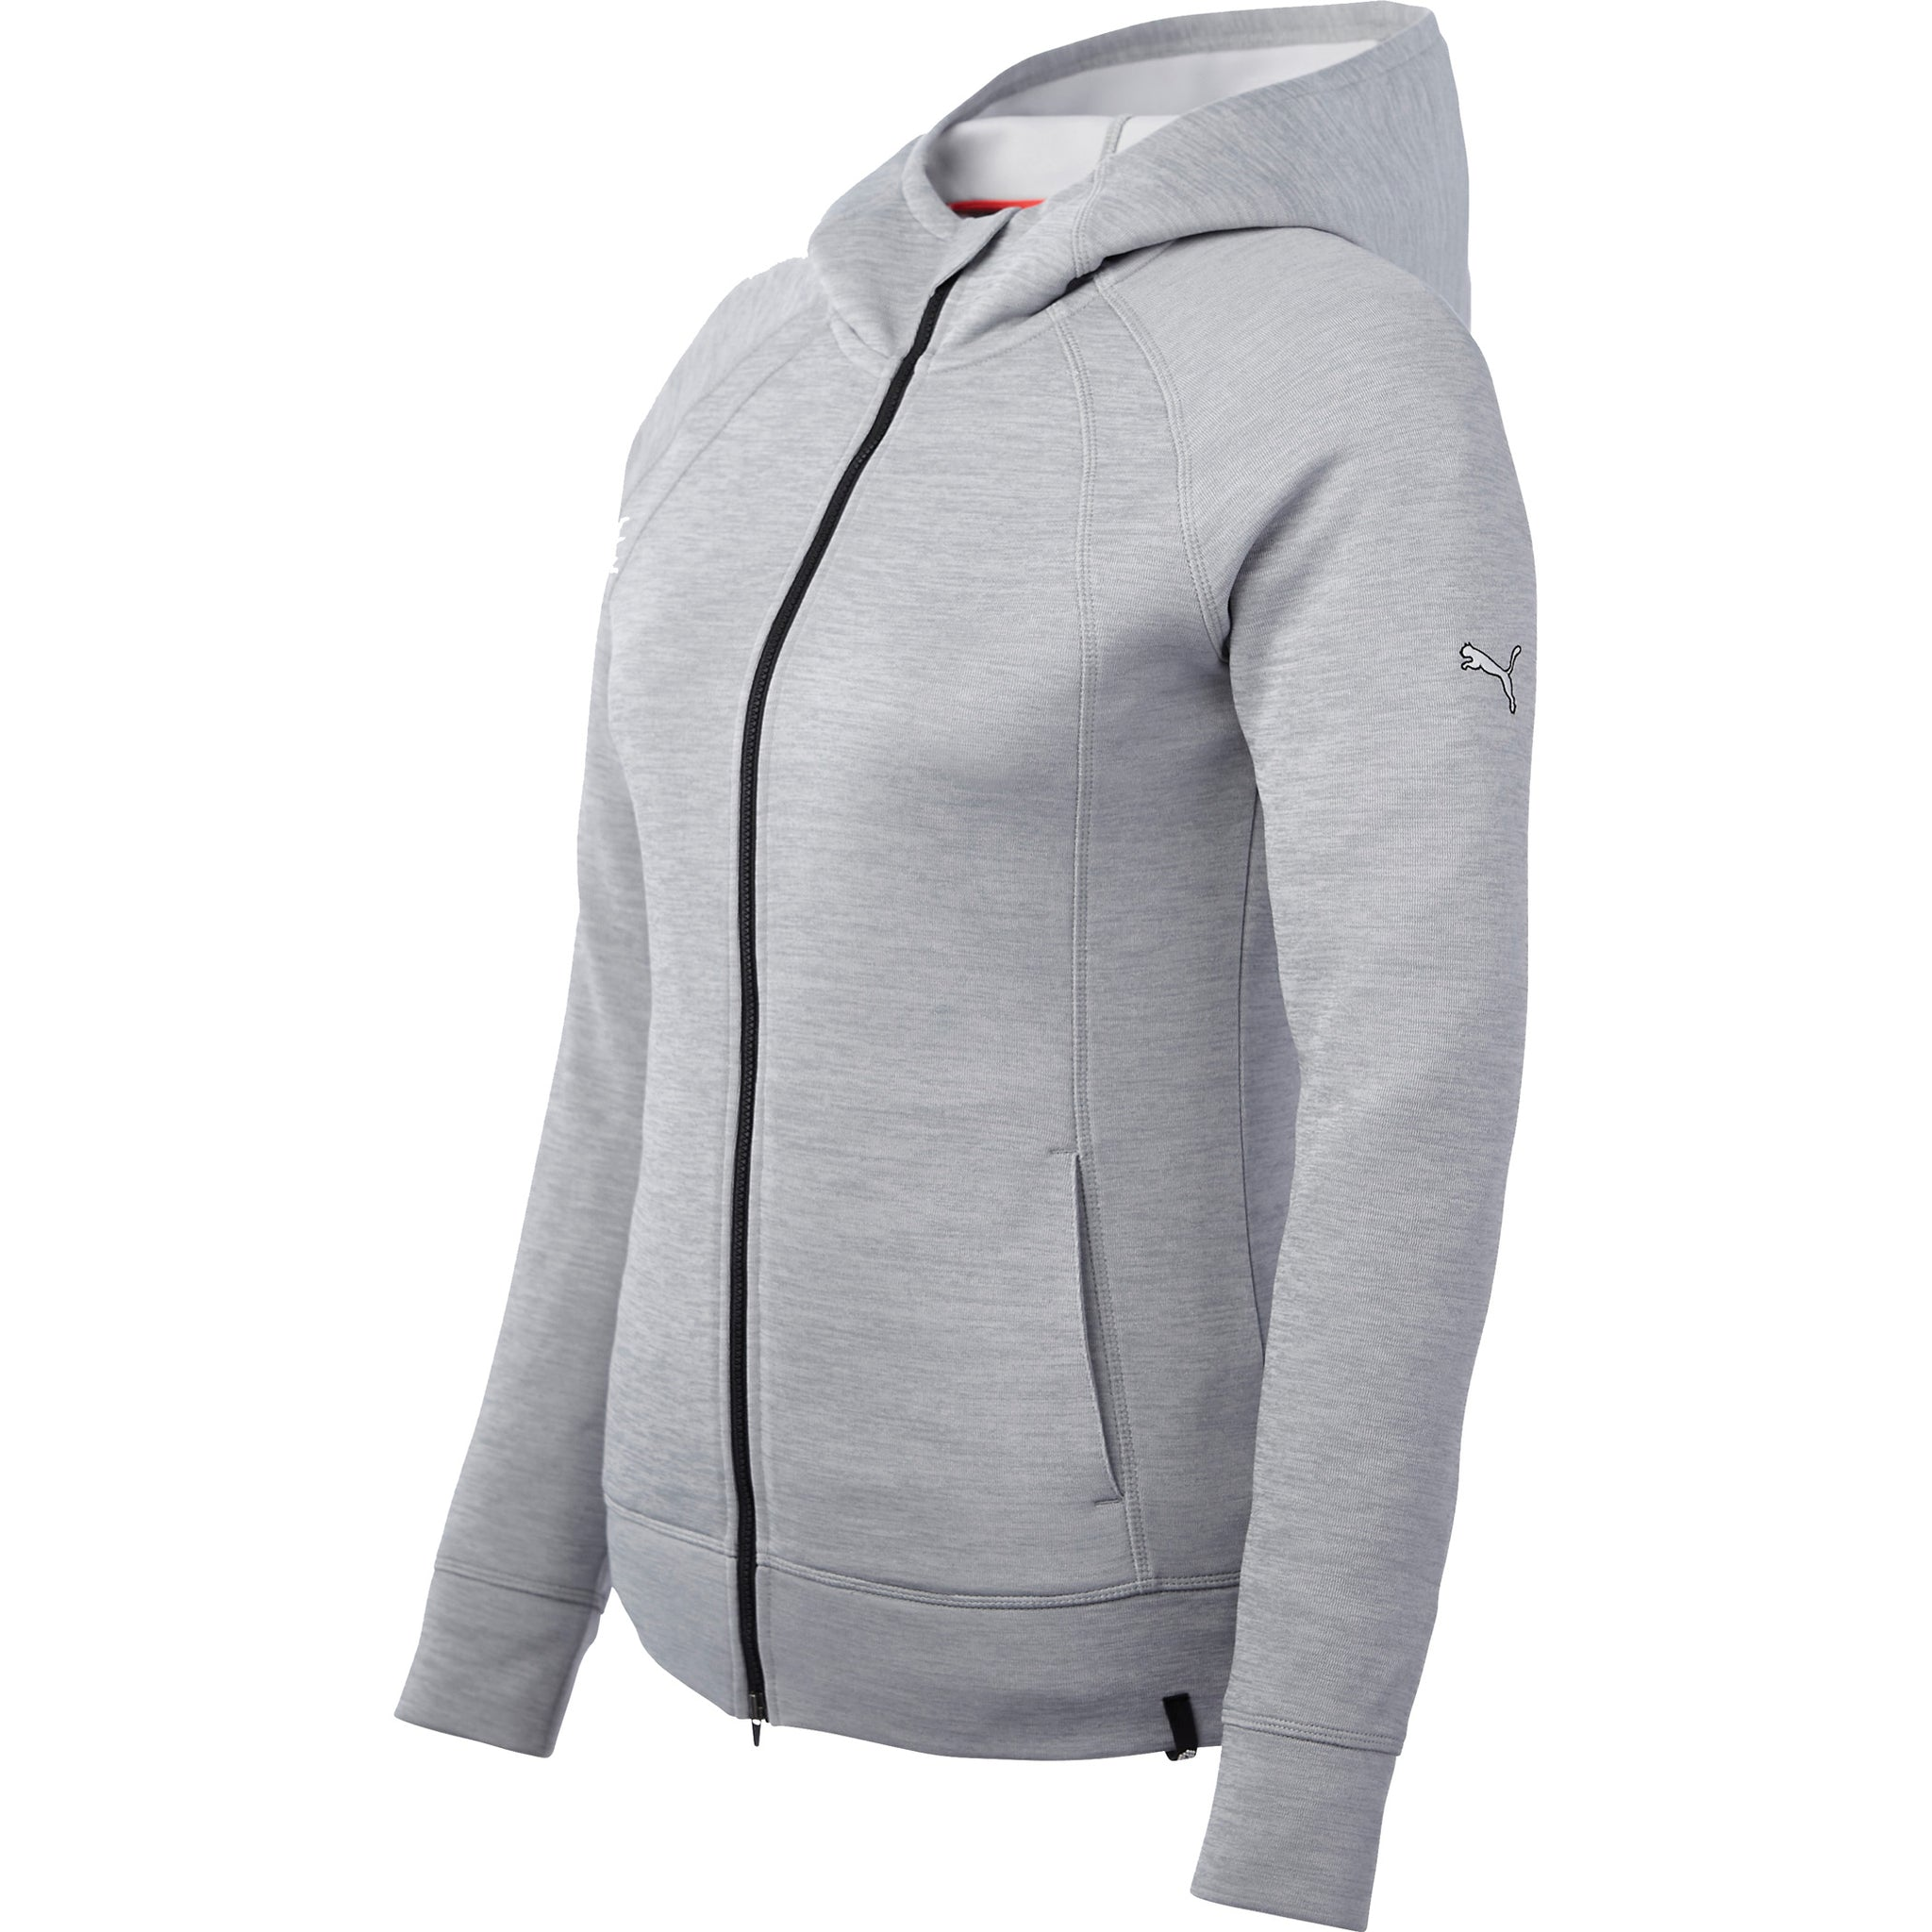 PUMA LADIES GOLF PWR FULL ZIP HOODIE